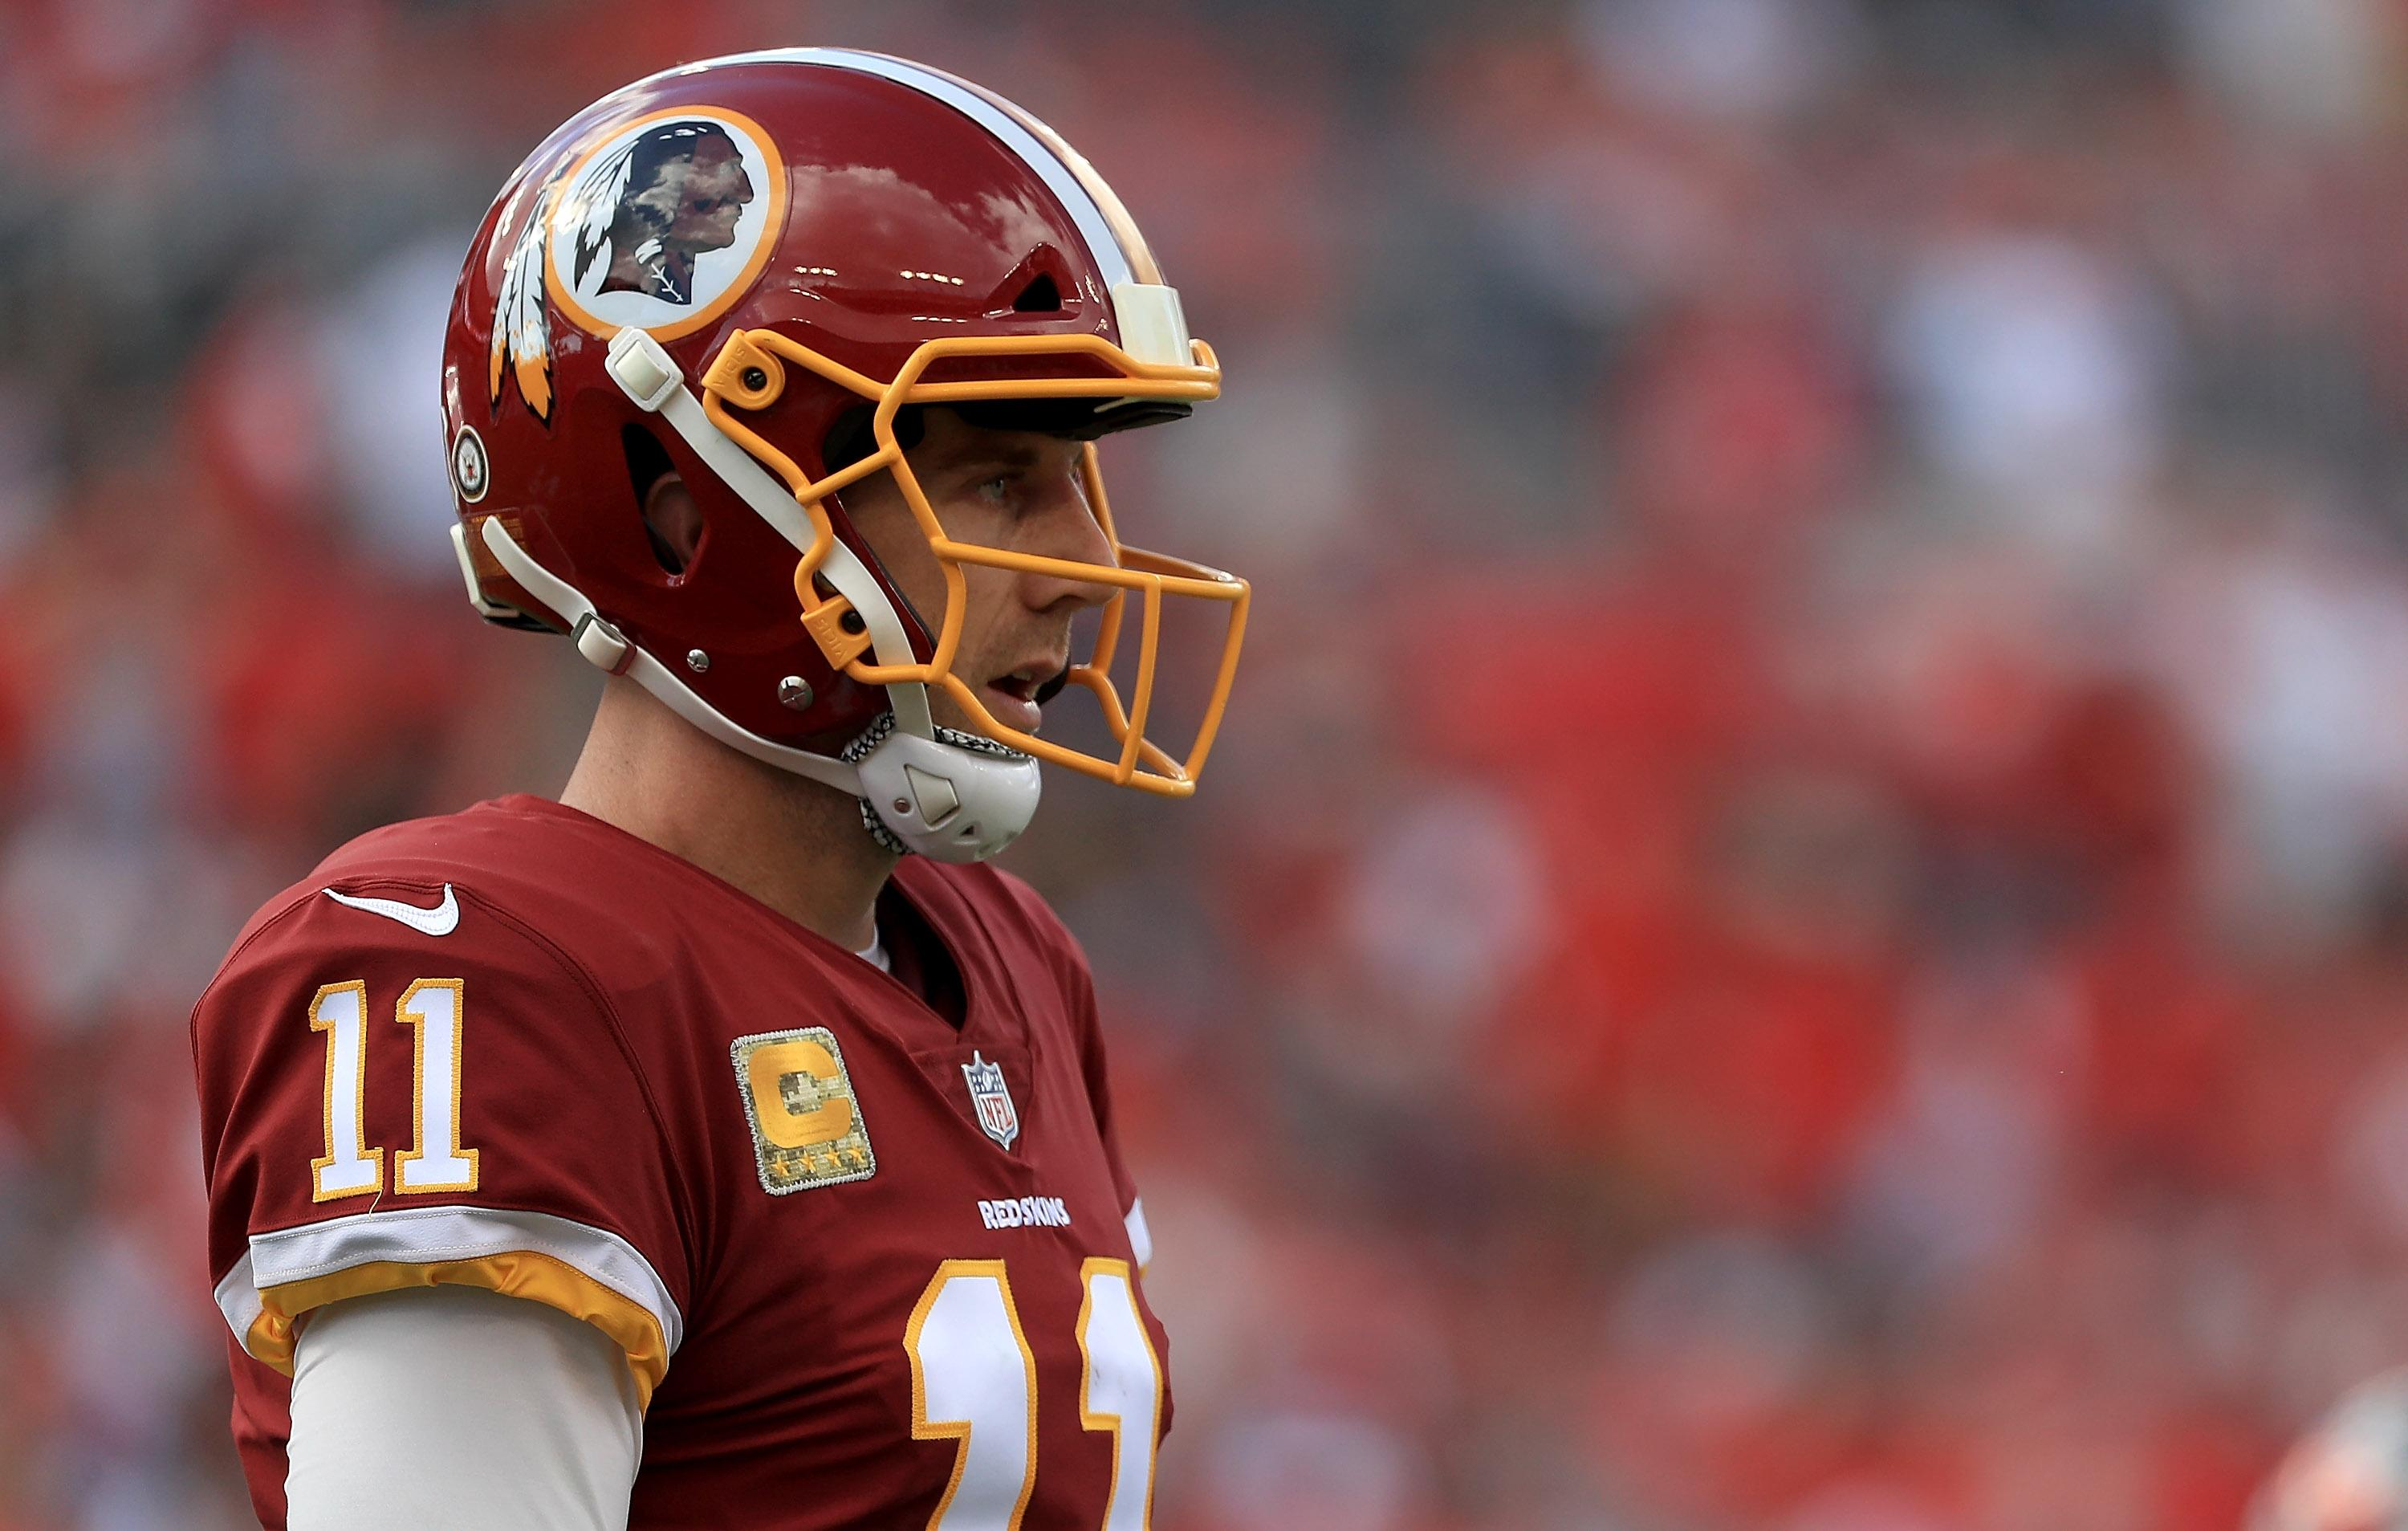 Redskins QB Alex Smith Suffers Gruesome Leg Injury